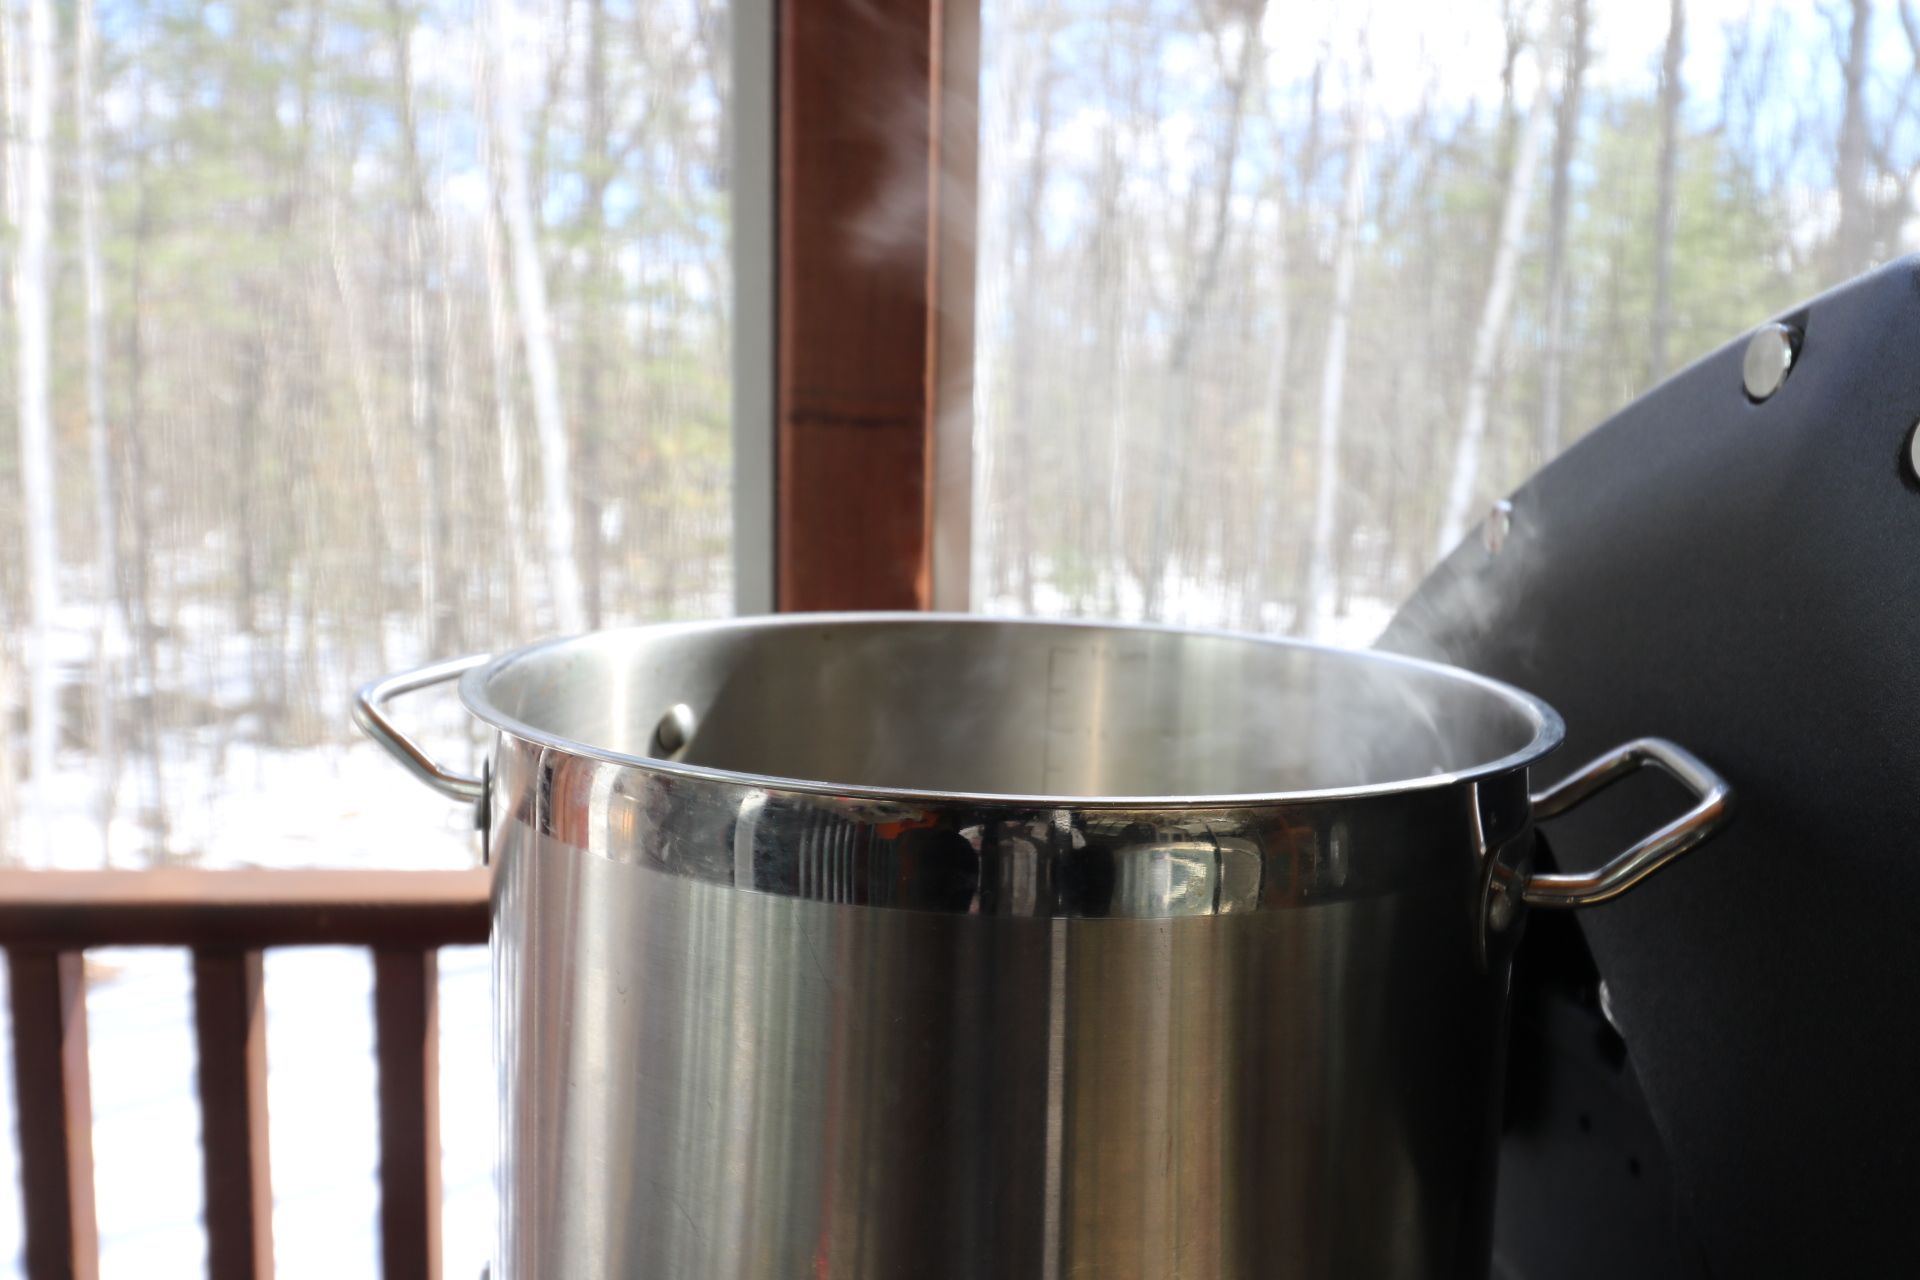 Boiling and waiting. Waiting for the water to evaporate off....waiting for the sap to change.